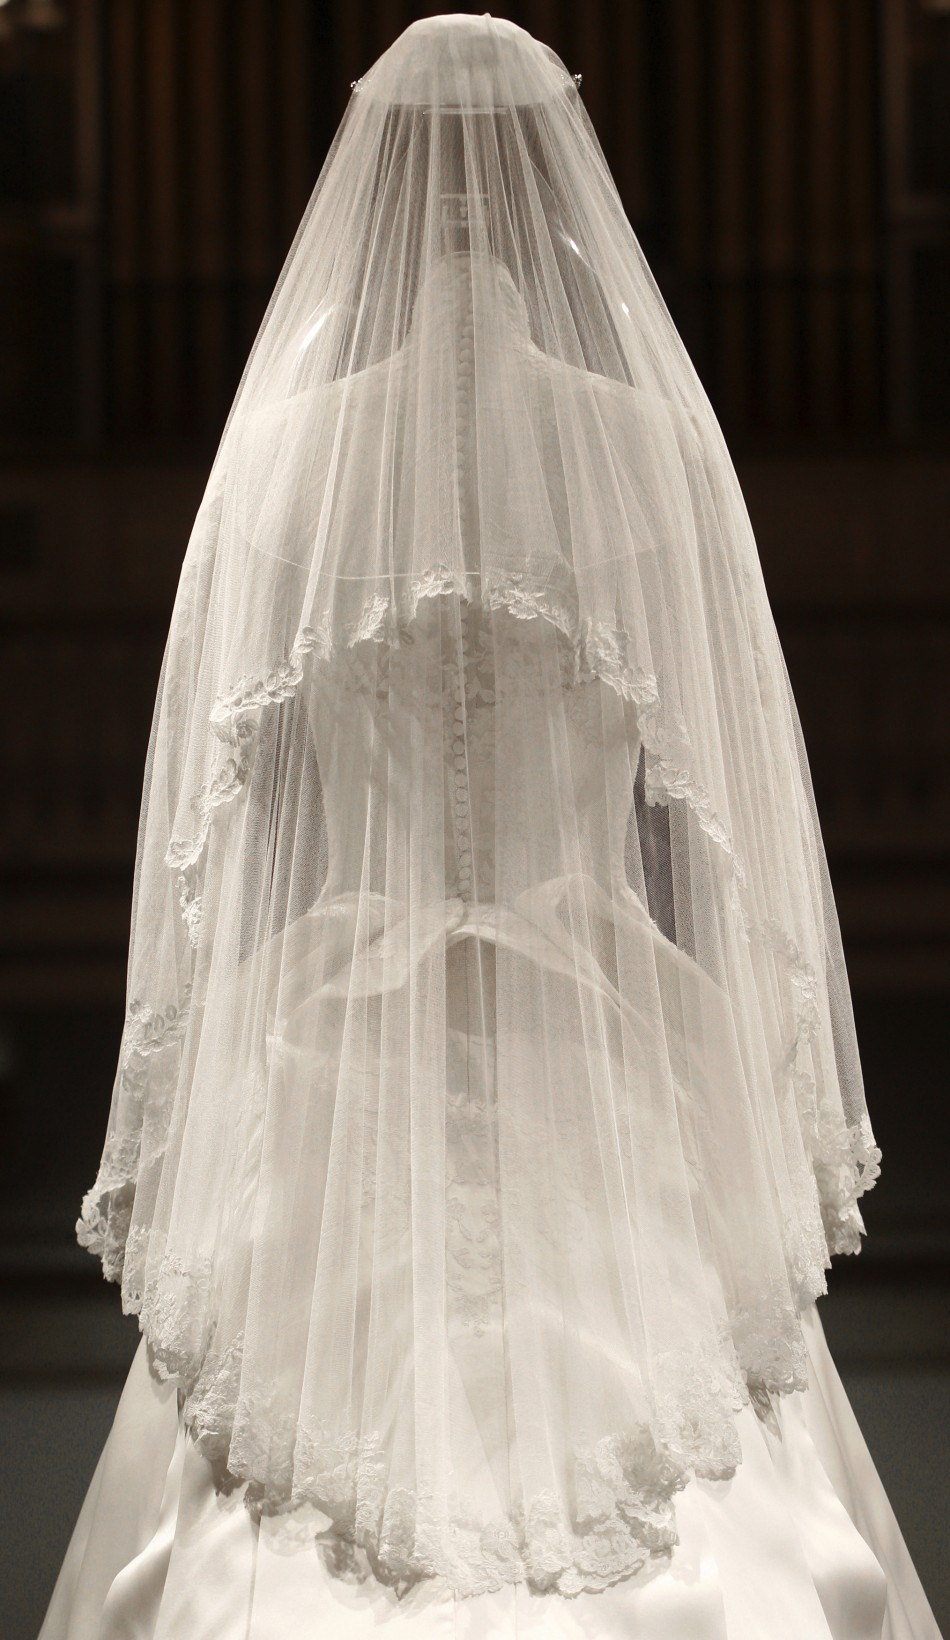 The wedding dress of Britain039s Catherine, Duchess of Cambridge is seen as it is prepared for display at Buckingham Palace in London